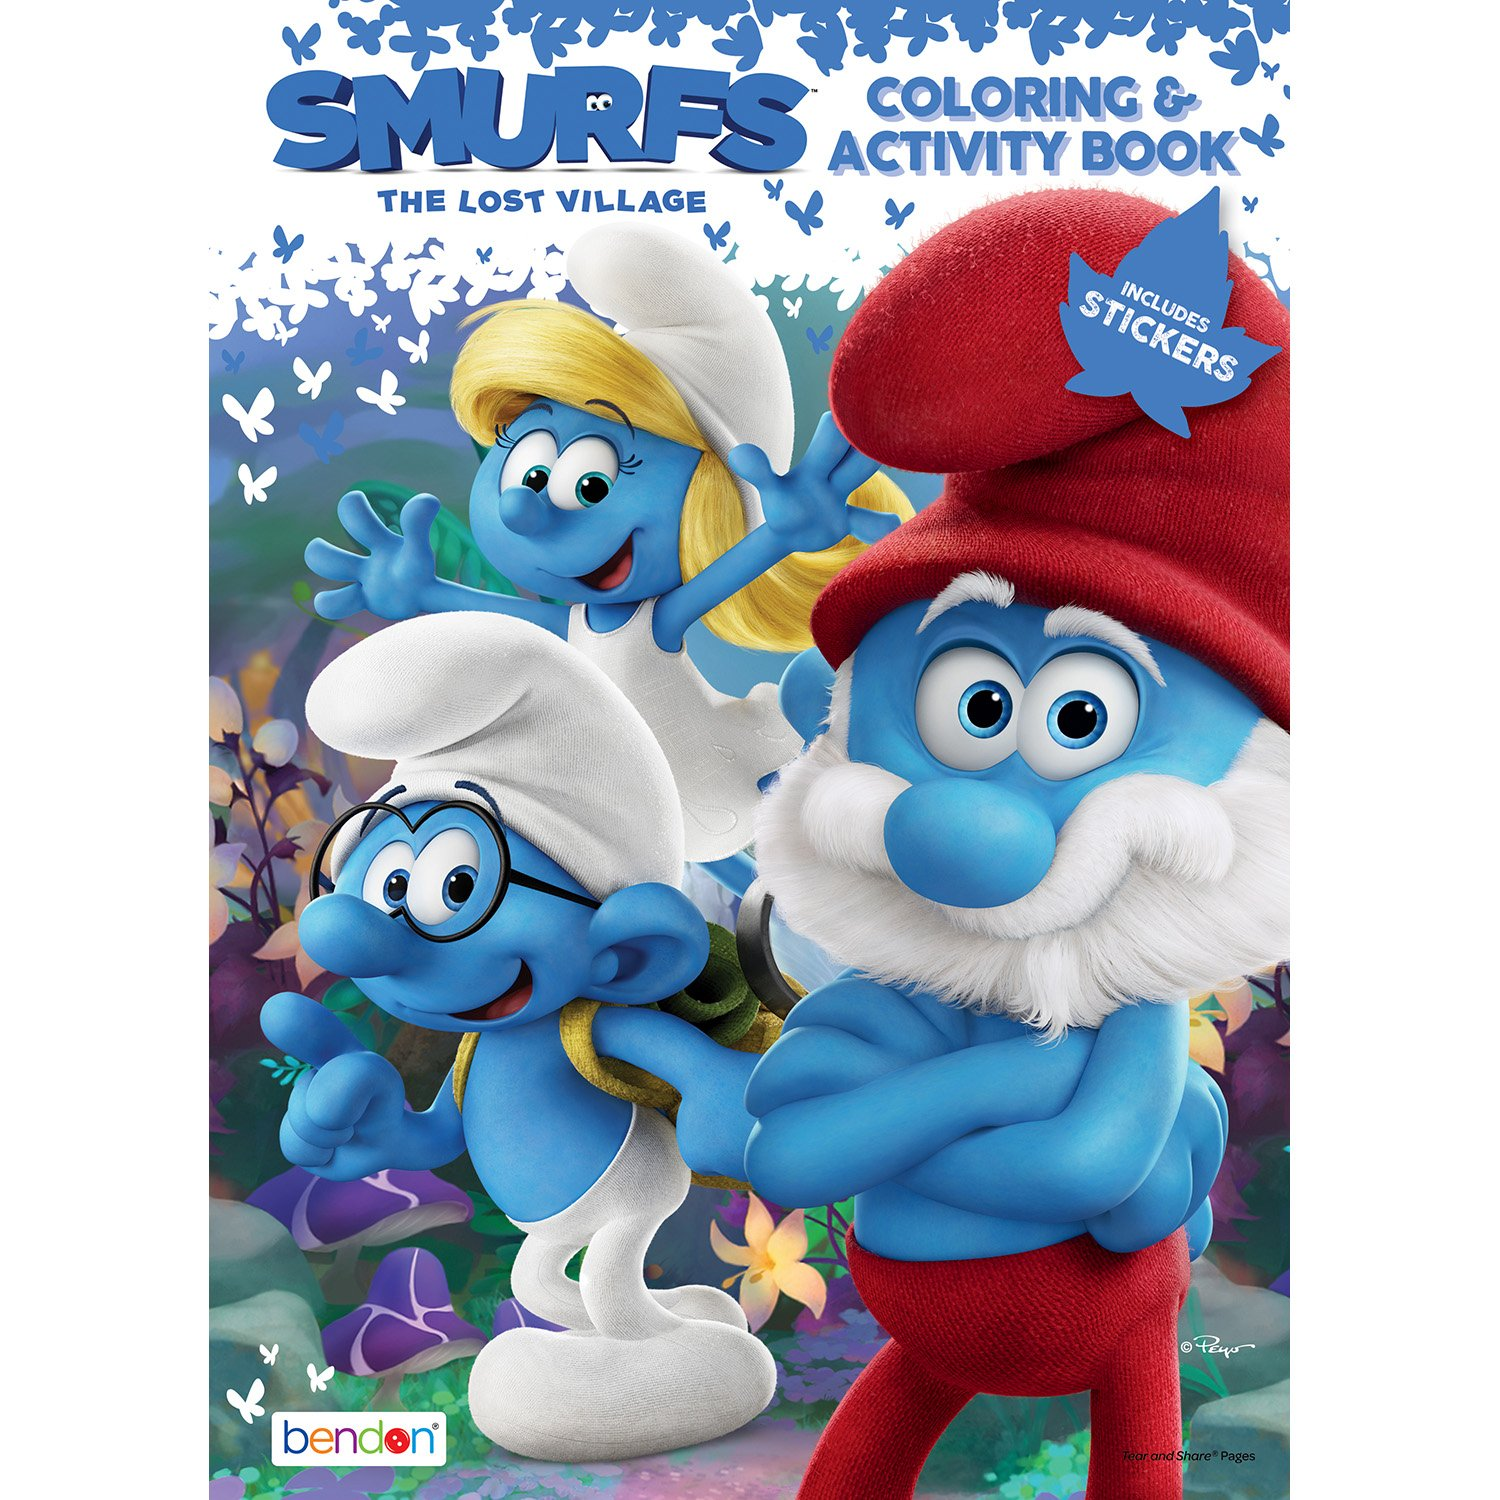 89181 Activity Book Bendon Inc Coloring /& Activity Book Bendon Smurfs The Lost Village Movie